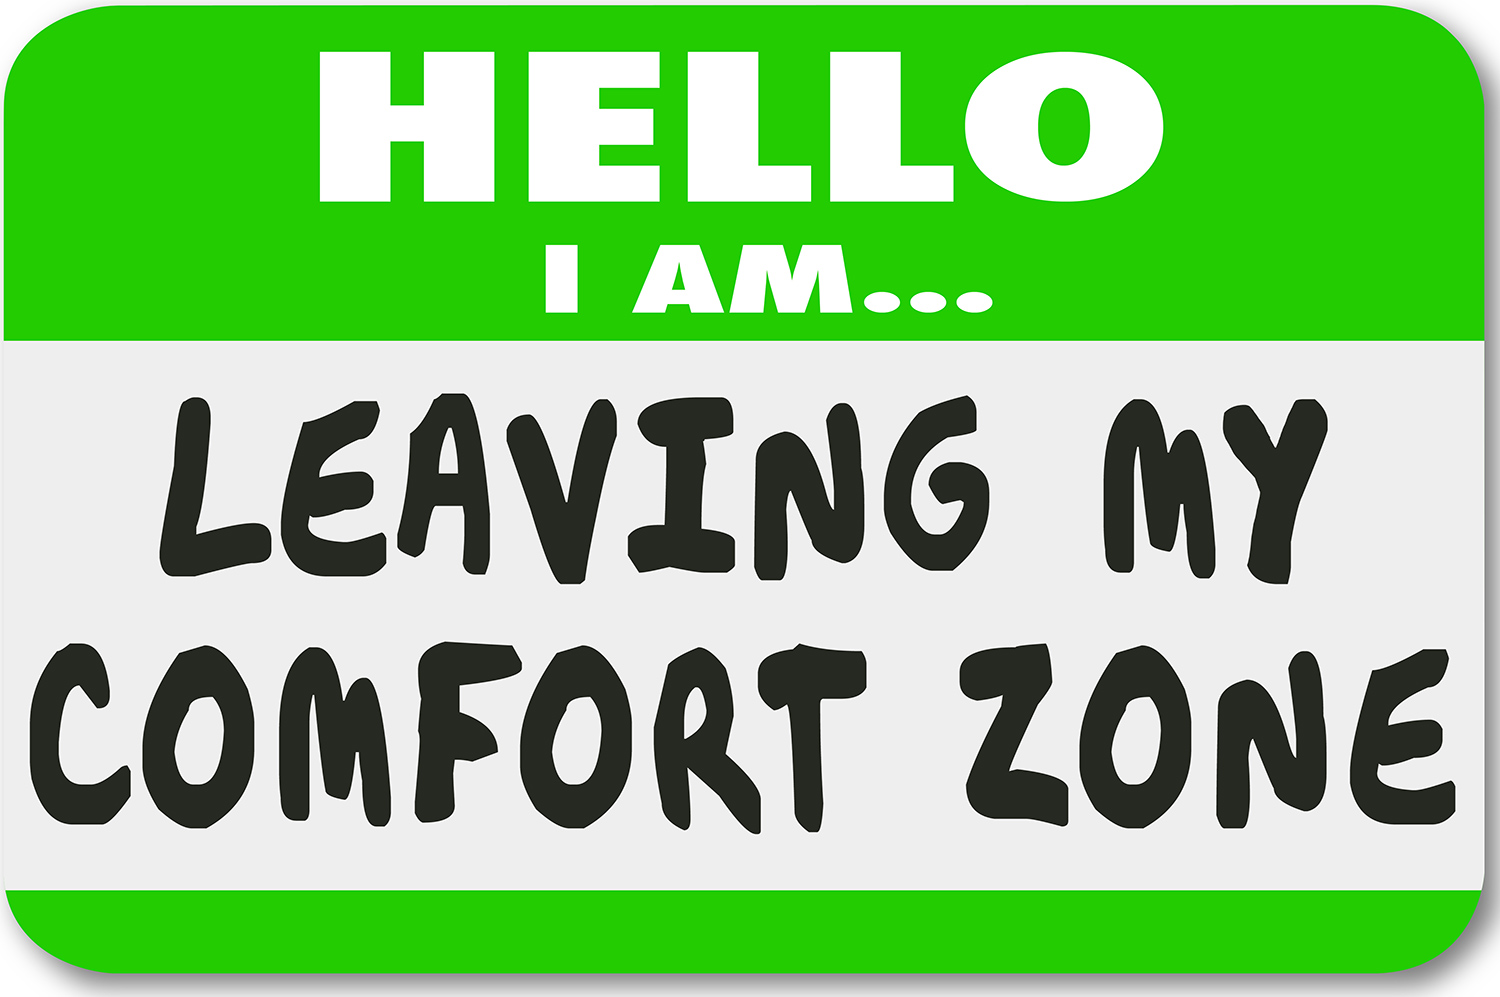 I am leaving my comfort zone.